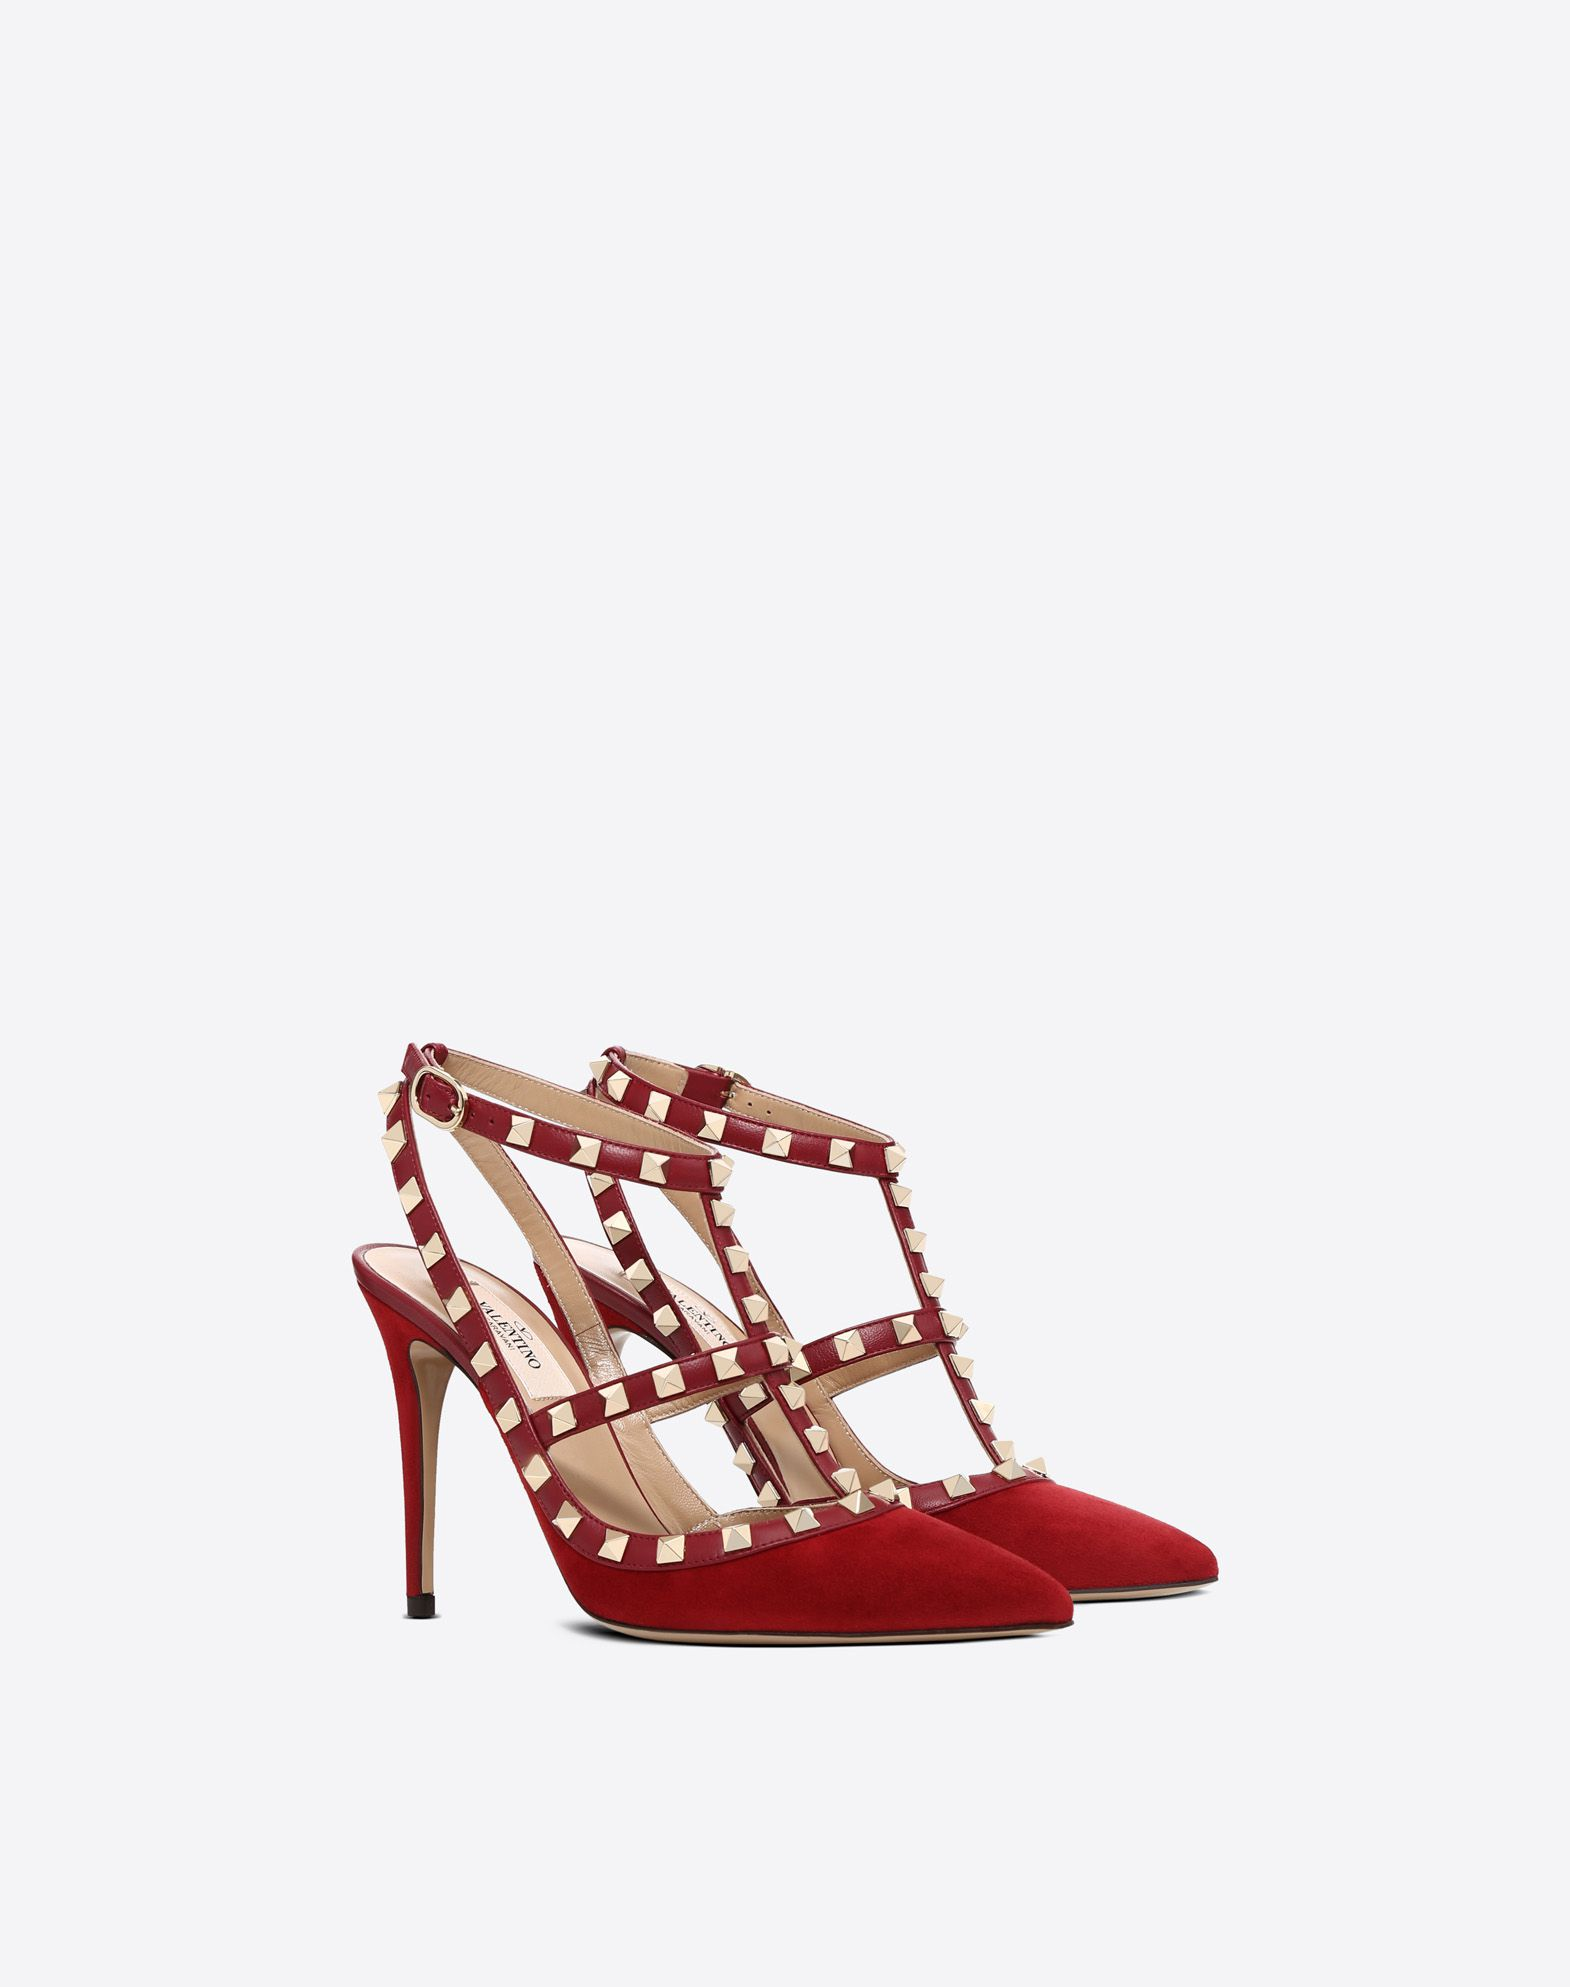 VALENTINO GARAVANI Rockstud Court HIGH HEEL PUMPS D r